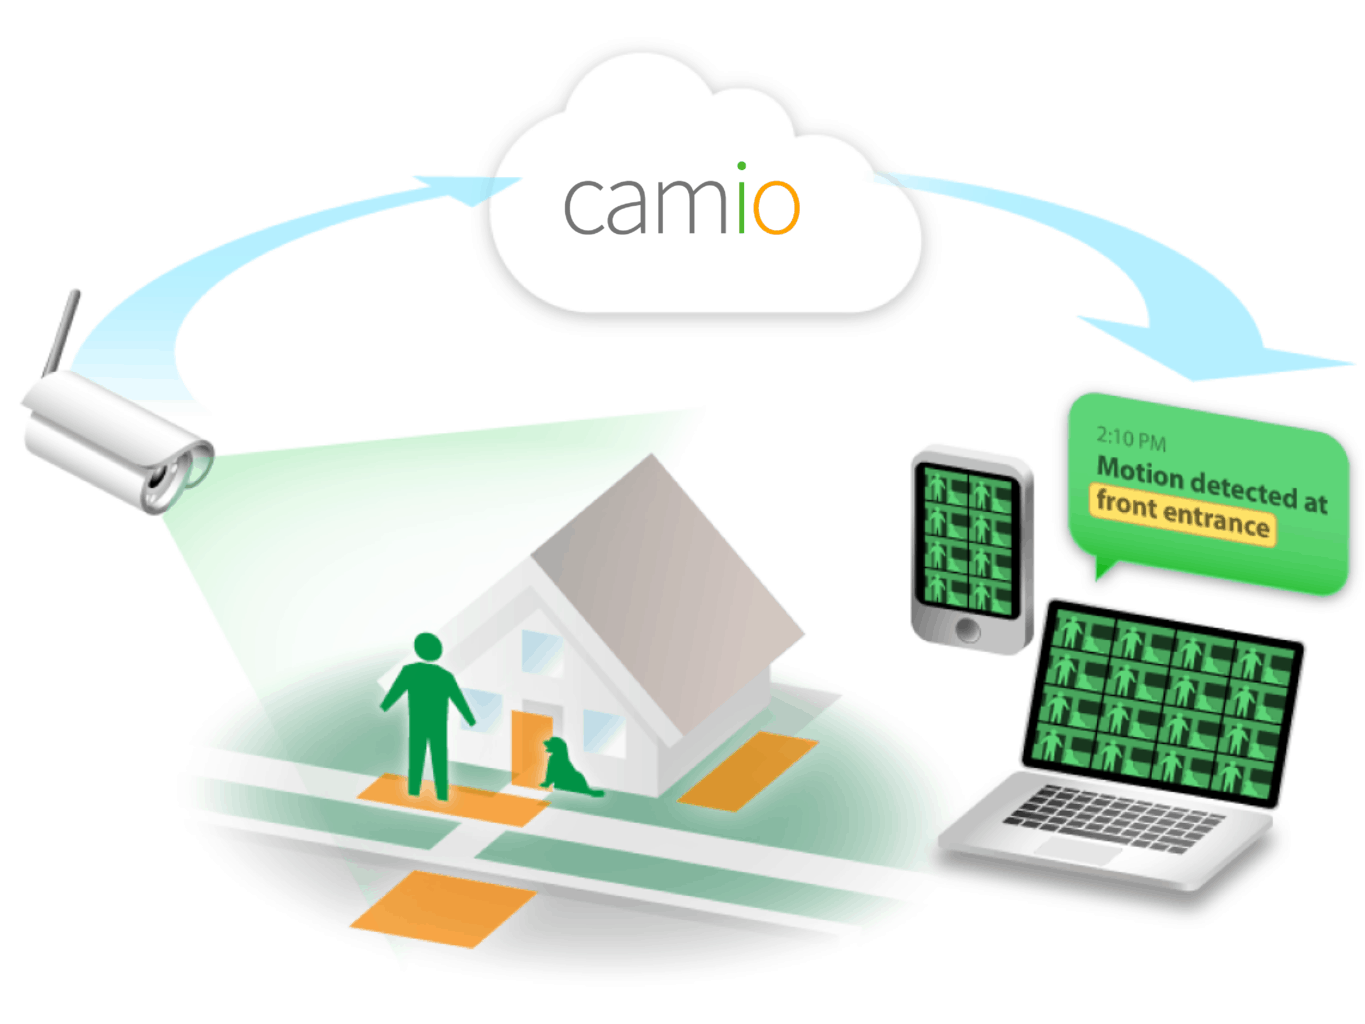 Camio-Overview-Homesecuritylist